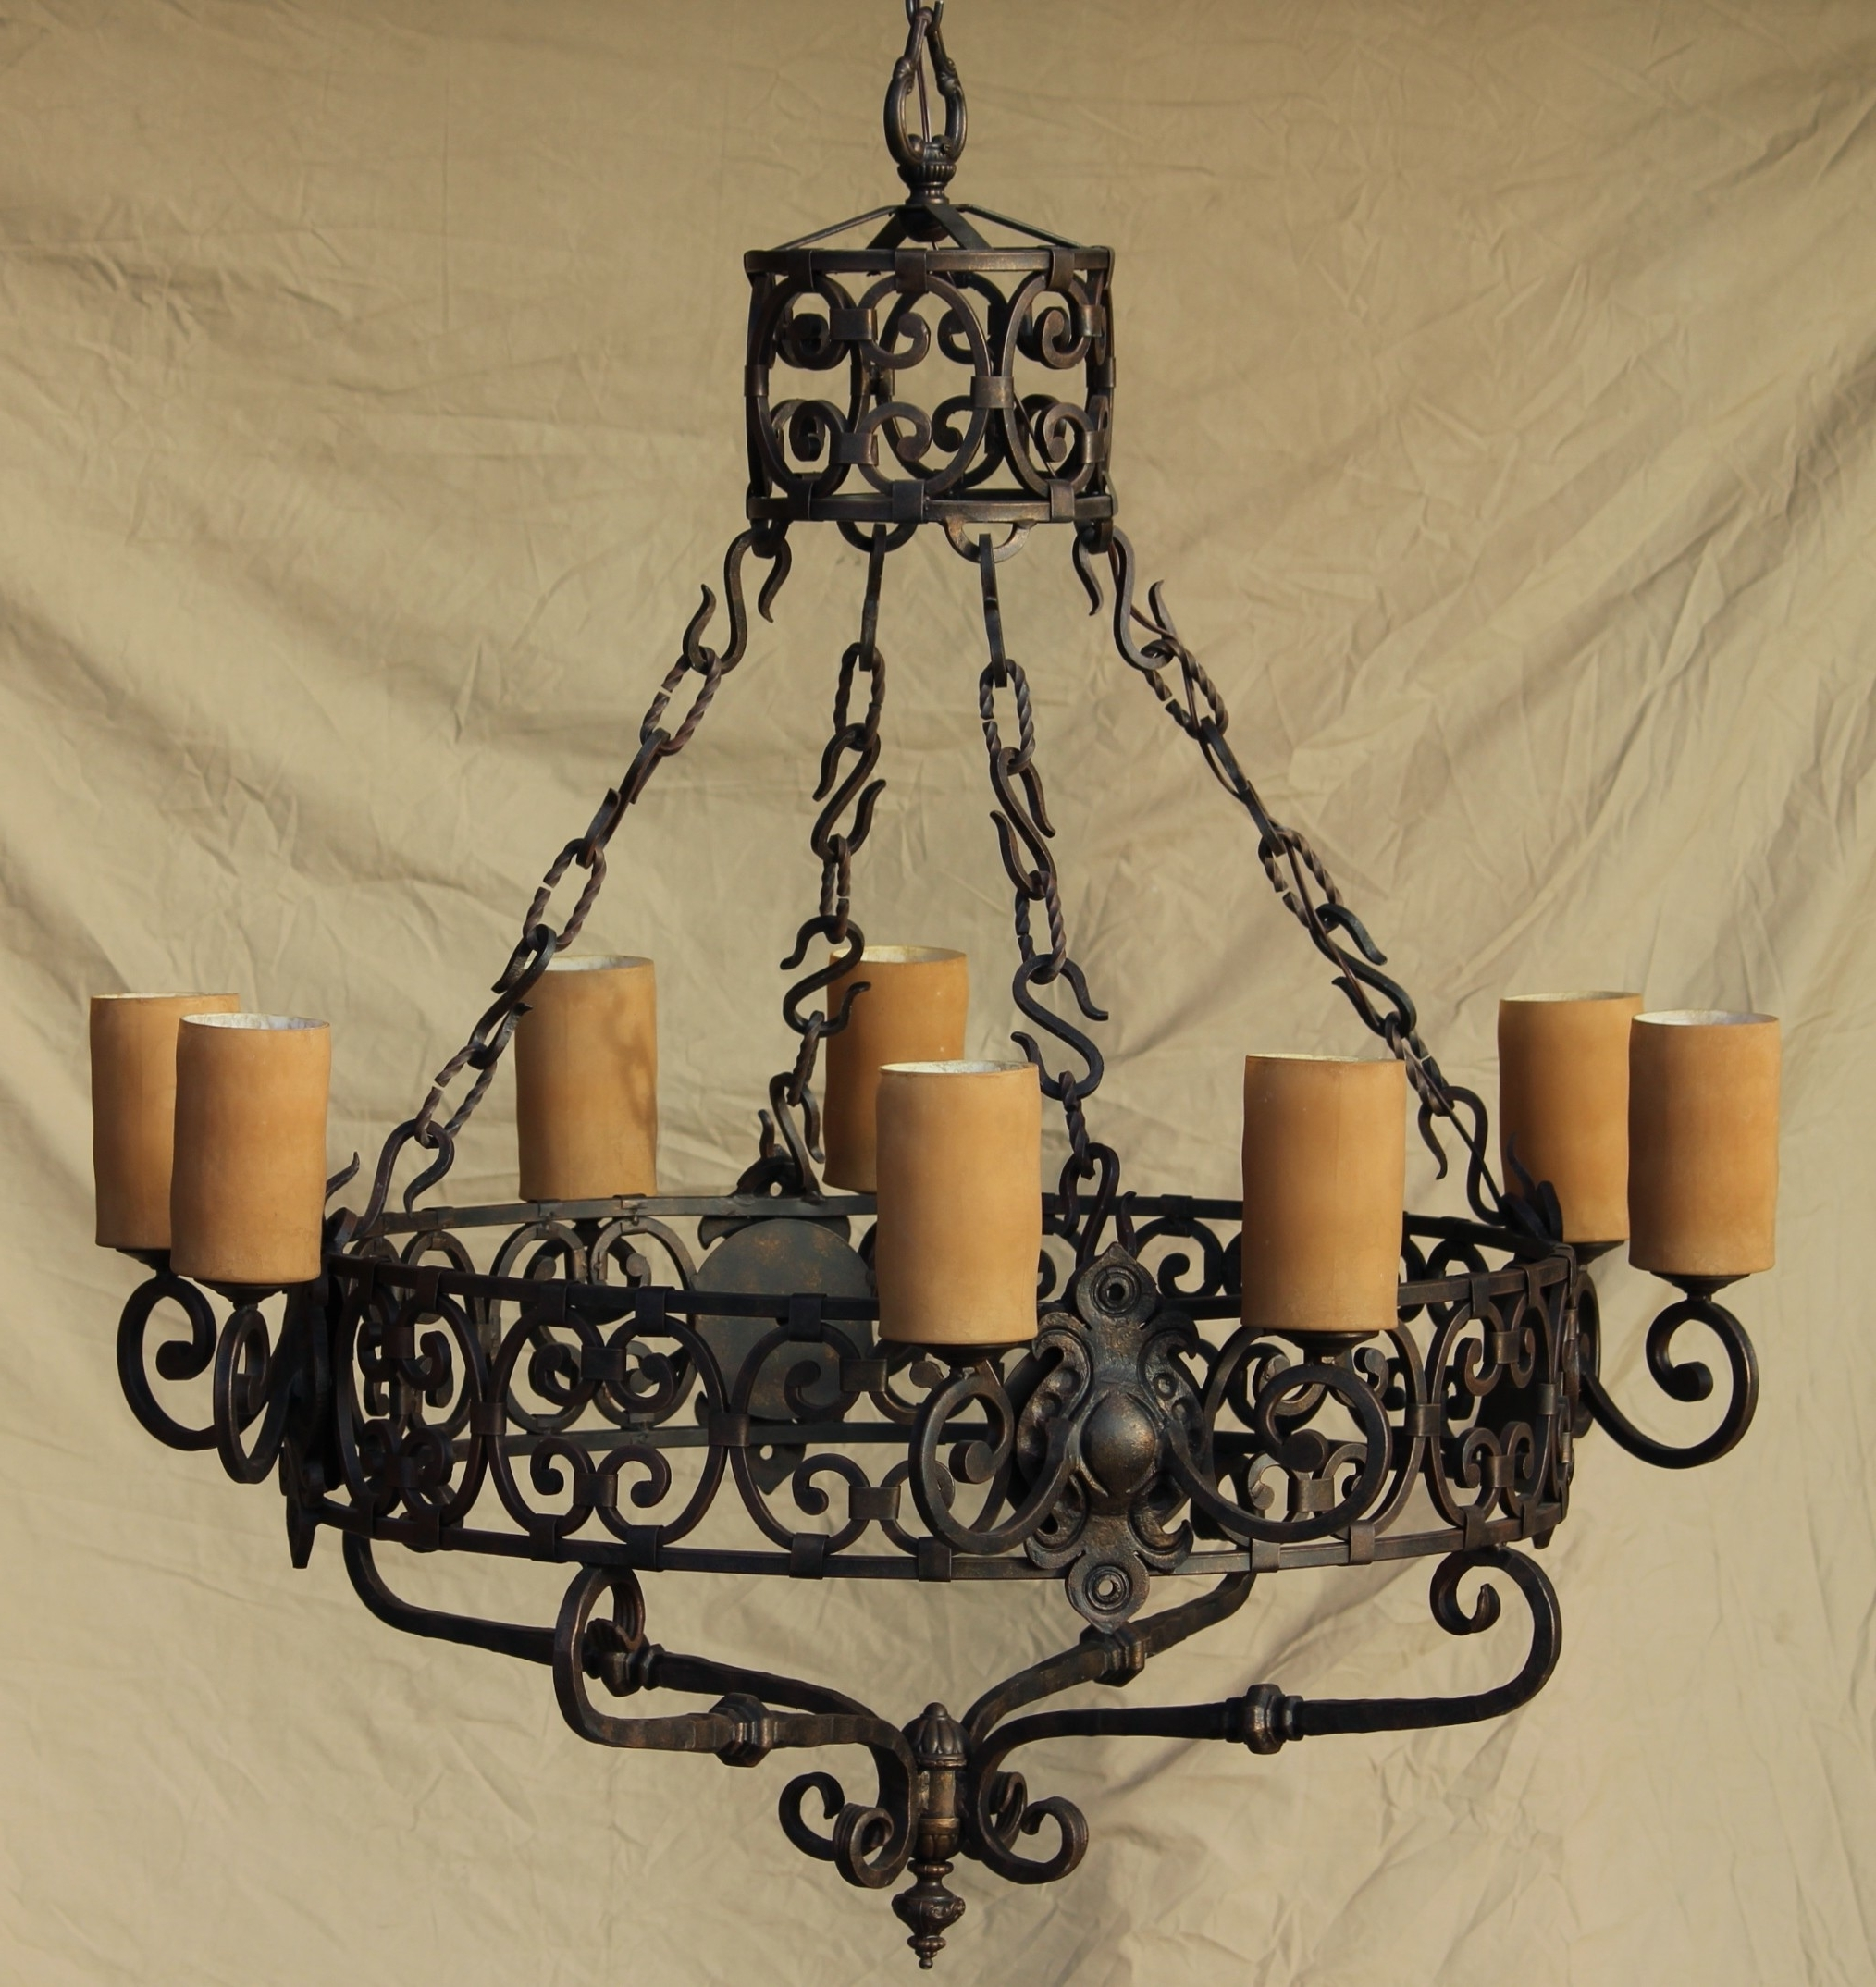 Lights Of Tuscany Chandeliers – Ceiling Fixtures – Fixtures For Most Popular Wrought Iron Chandeliers (View 8 of 20)